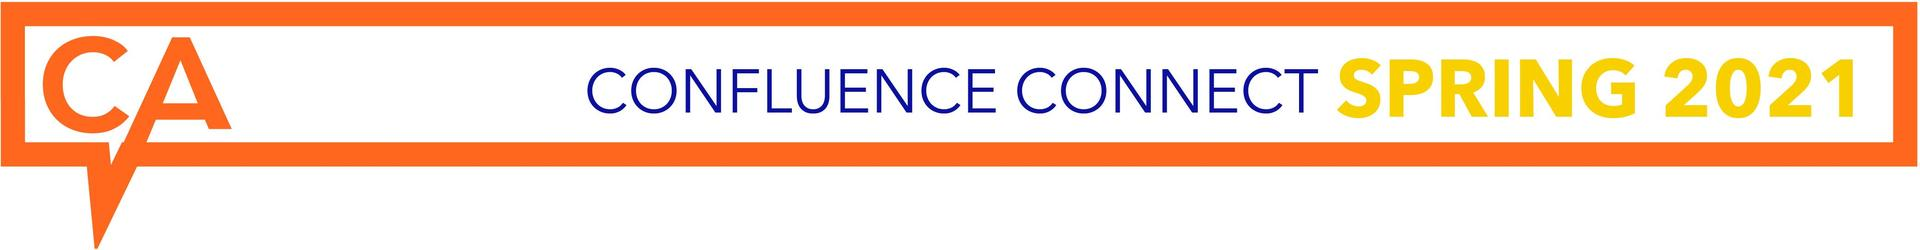 Confluence Connect 2021